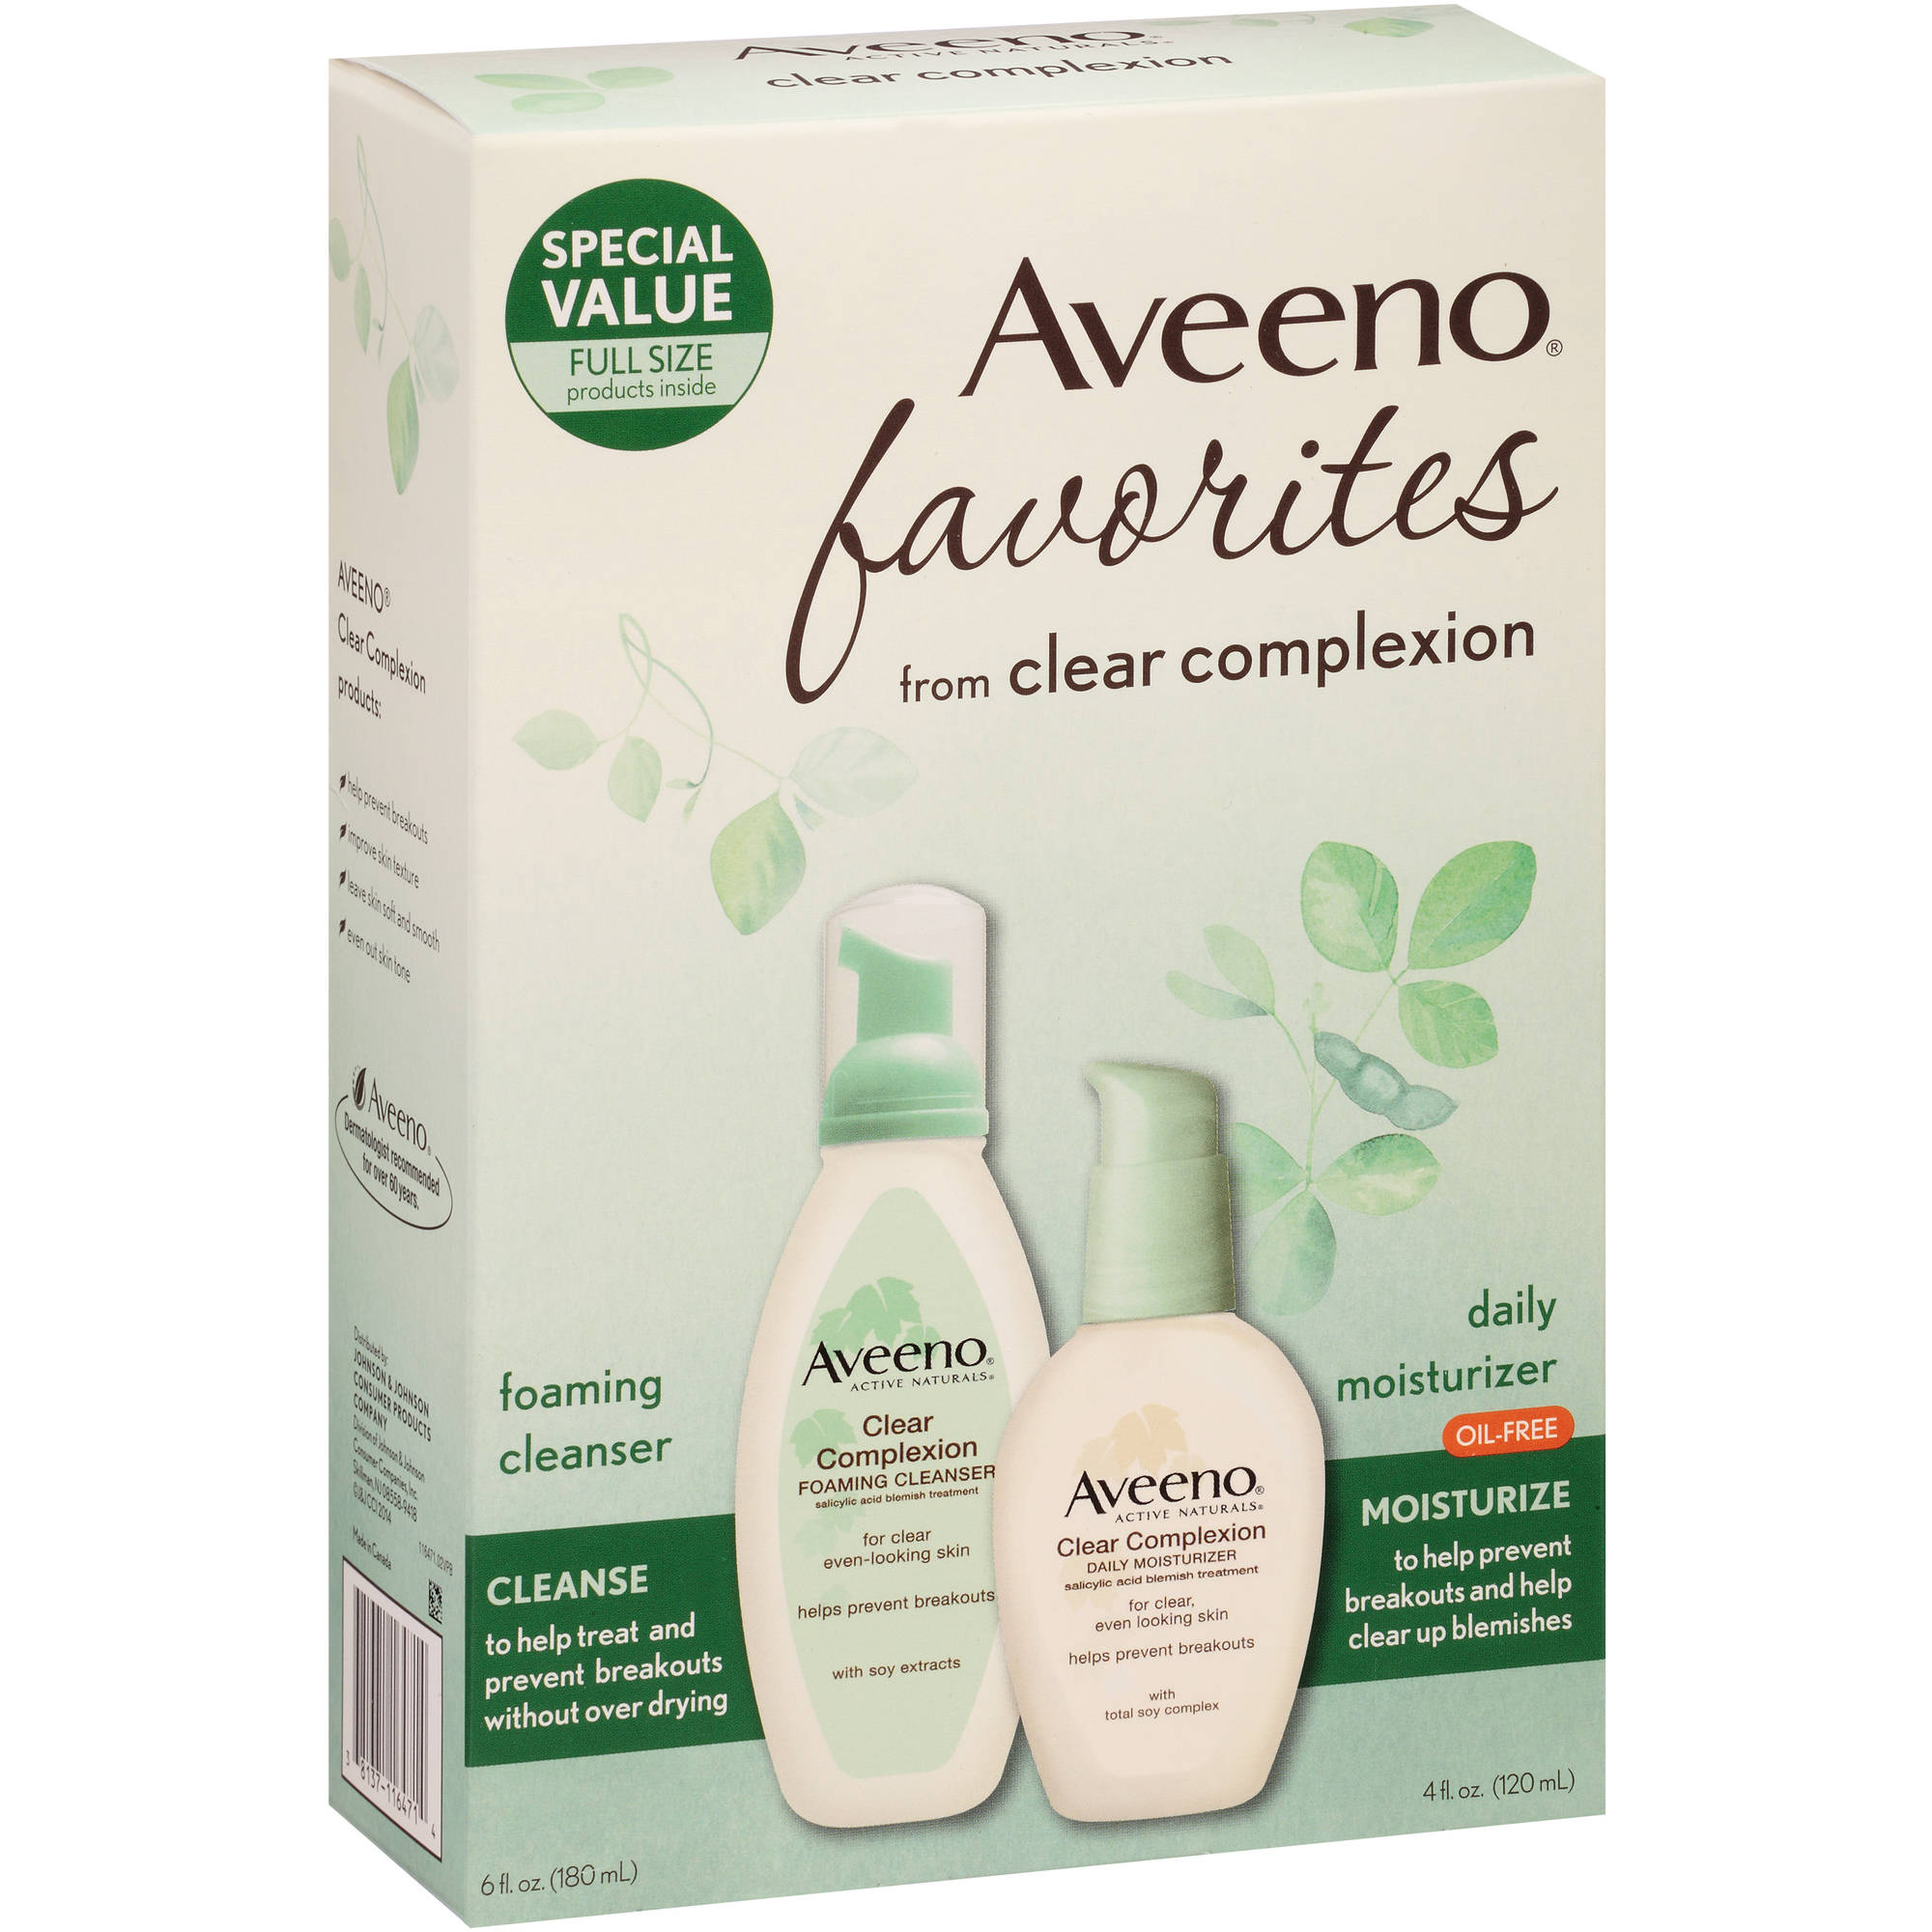 Aveeno Favorites Clear Complexion Foaming Cleanser & Daily Moisturizer Set, 10 fl oz